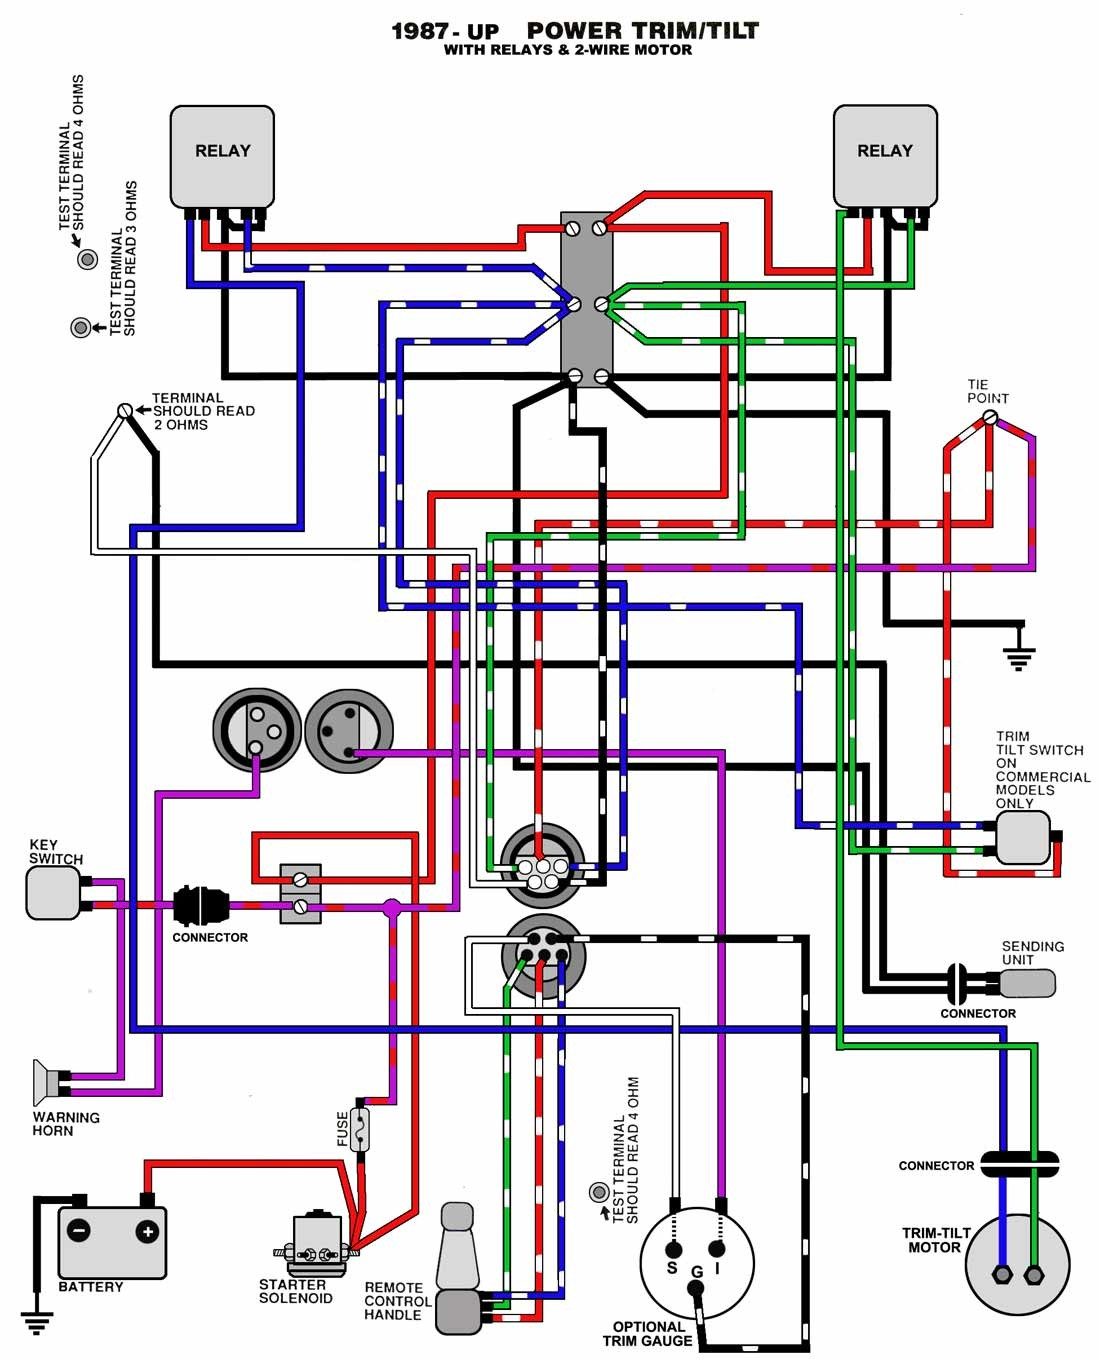 hight resolution of 1990 70 hp evinrude wiring diagram schematic wiring diagram third wiring diagrams for 1986 115 johnson outboard 90 hp johnson outboard wiring diagram